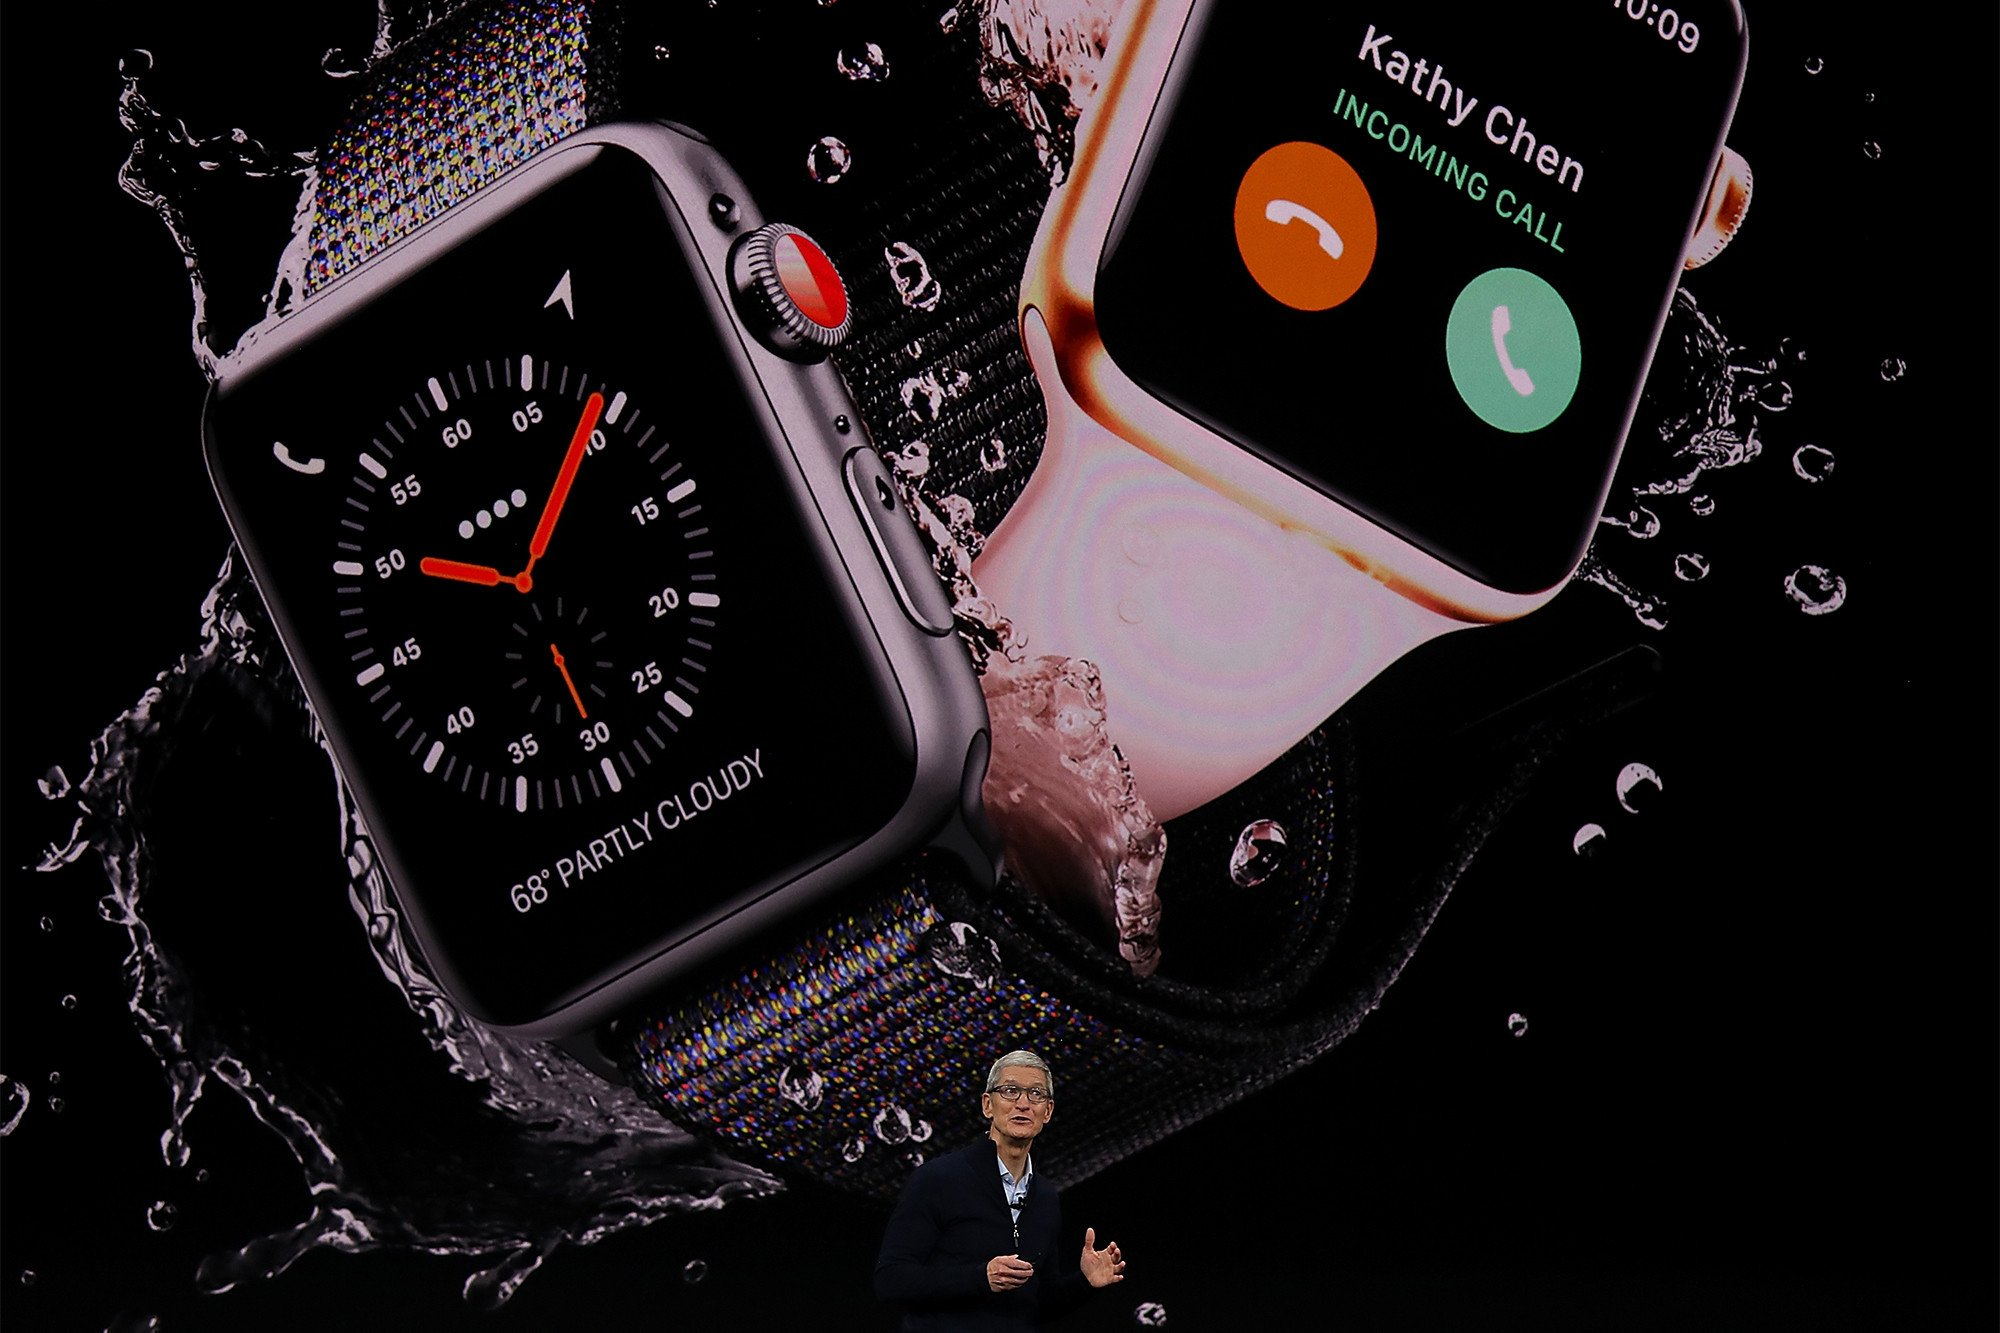 76-year-old thanks Tim Cook after Apple Watch saved his life